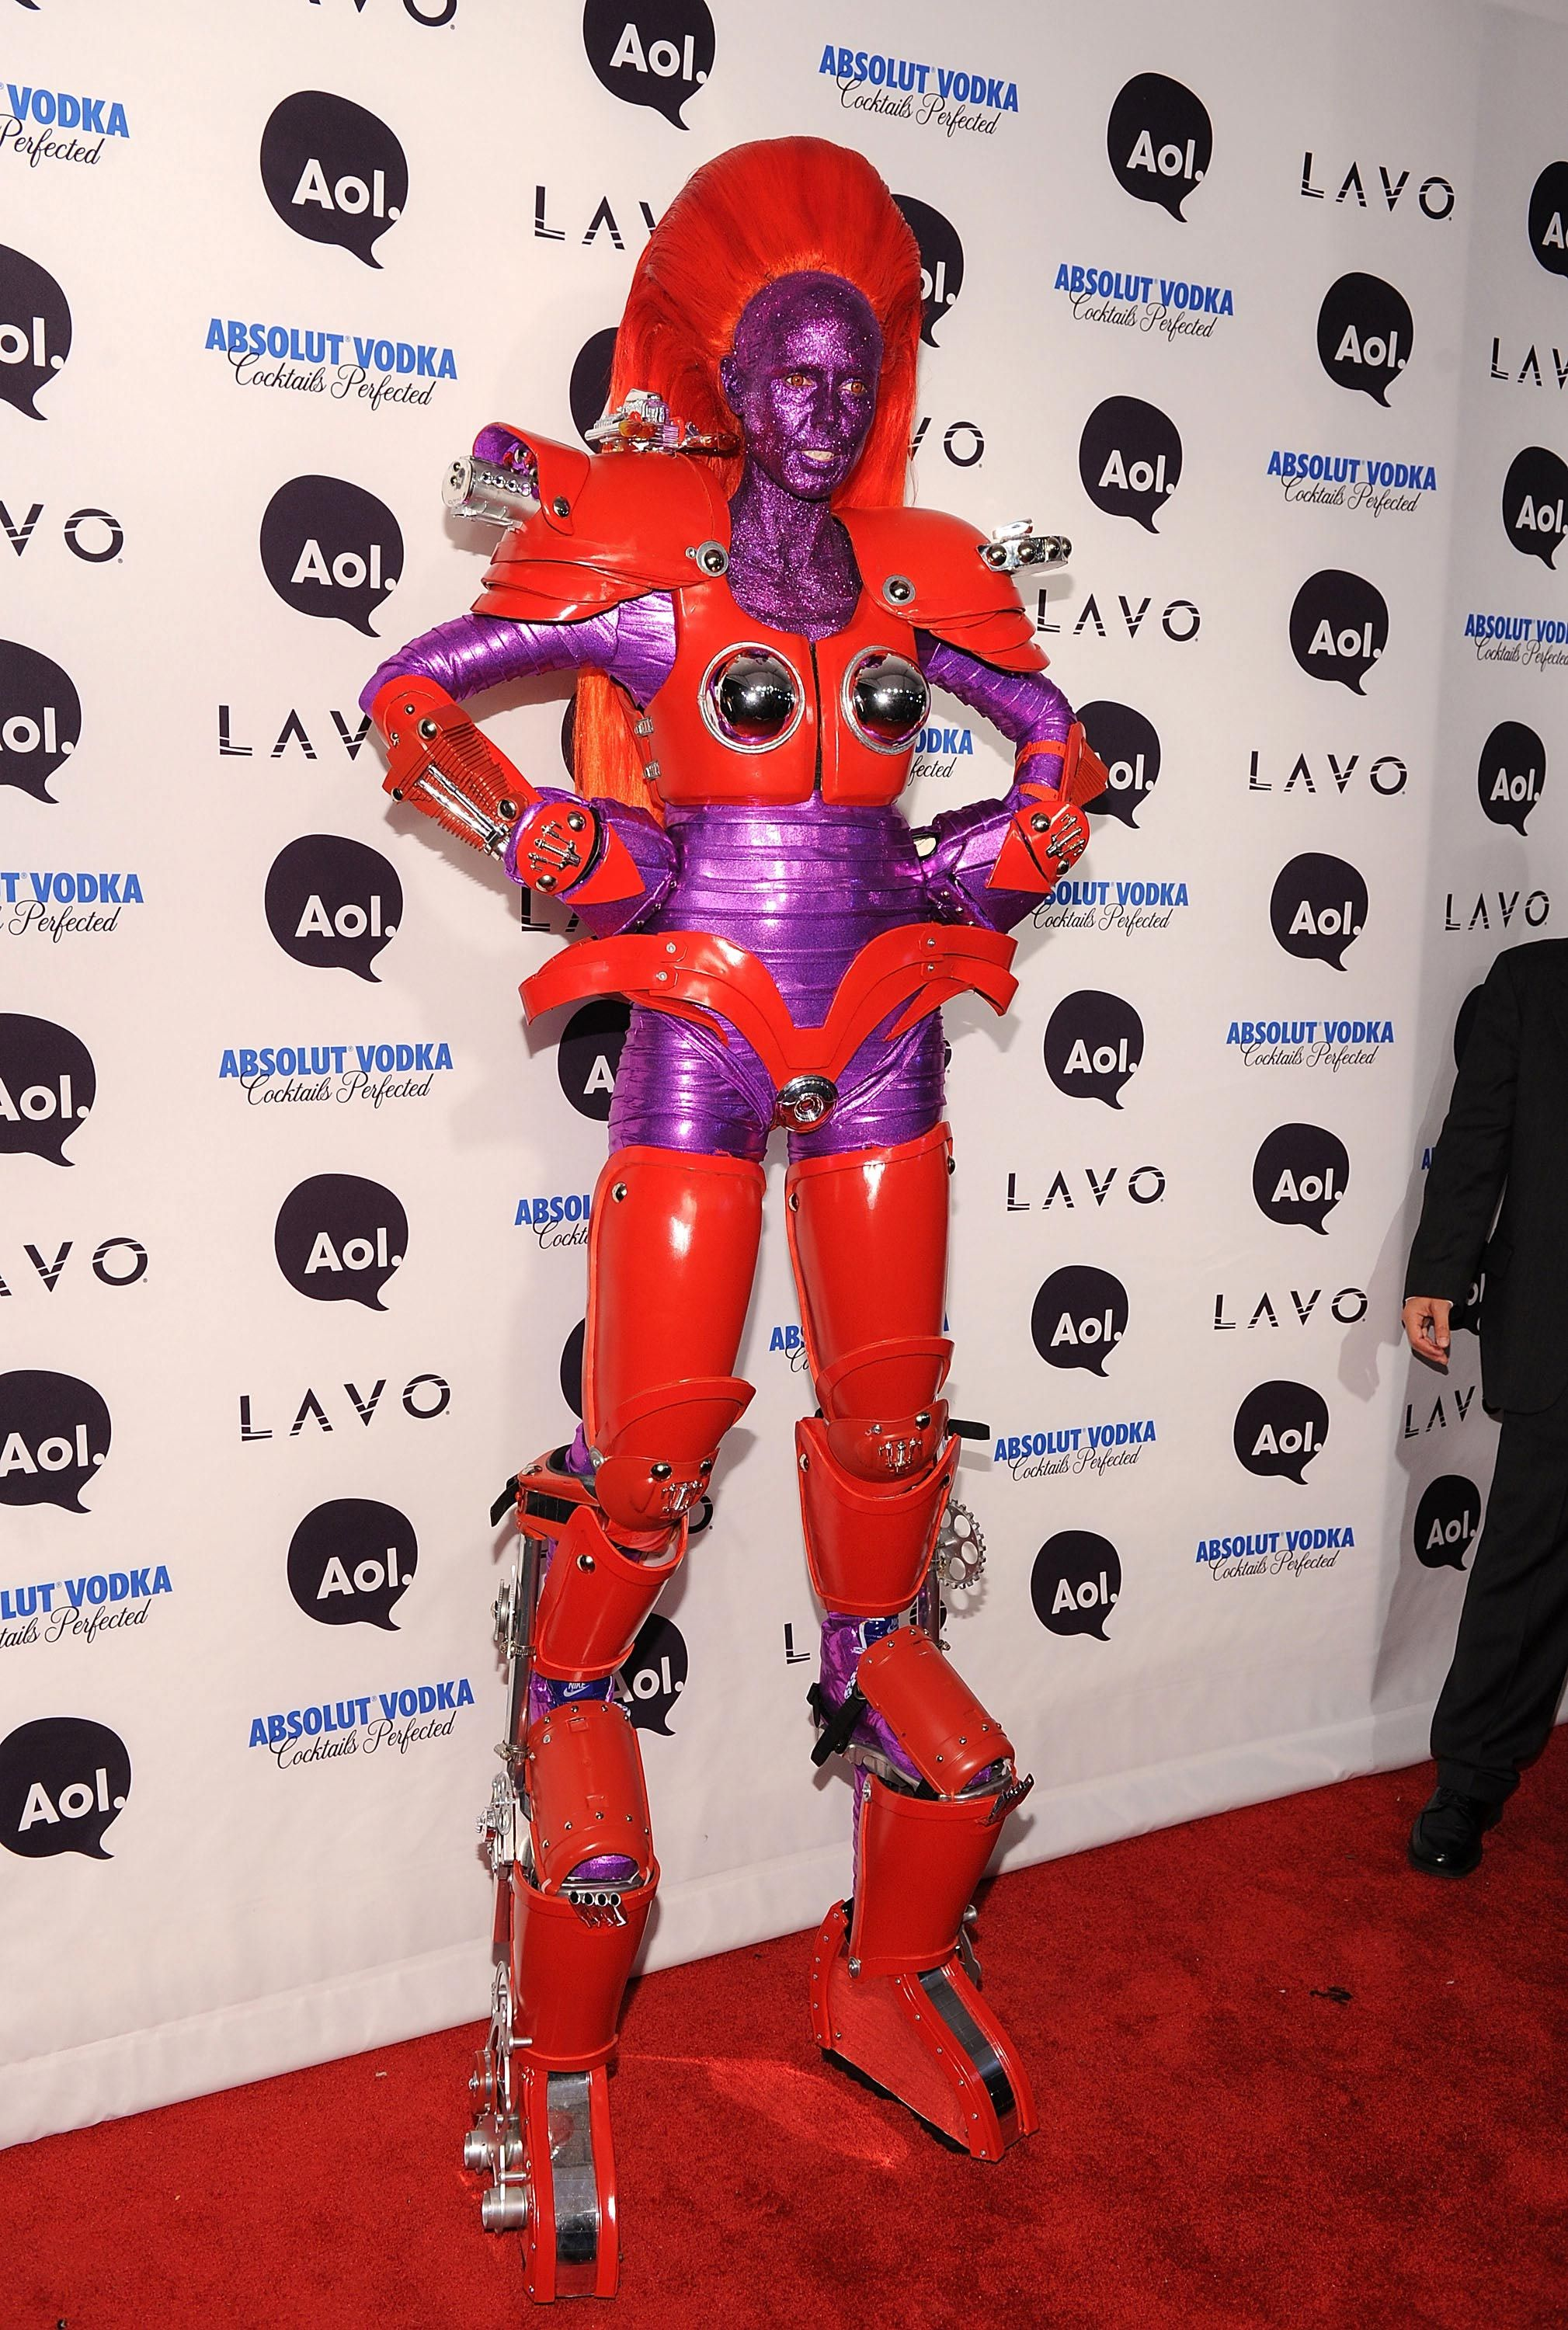 Heidi Klum Halloween Costumes Over the Years - Heidi Klum Halloween Party Costumes & Heidi Klum Halloween Costumes Over the Years - Heidi Klum Halloween ...